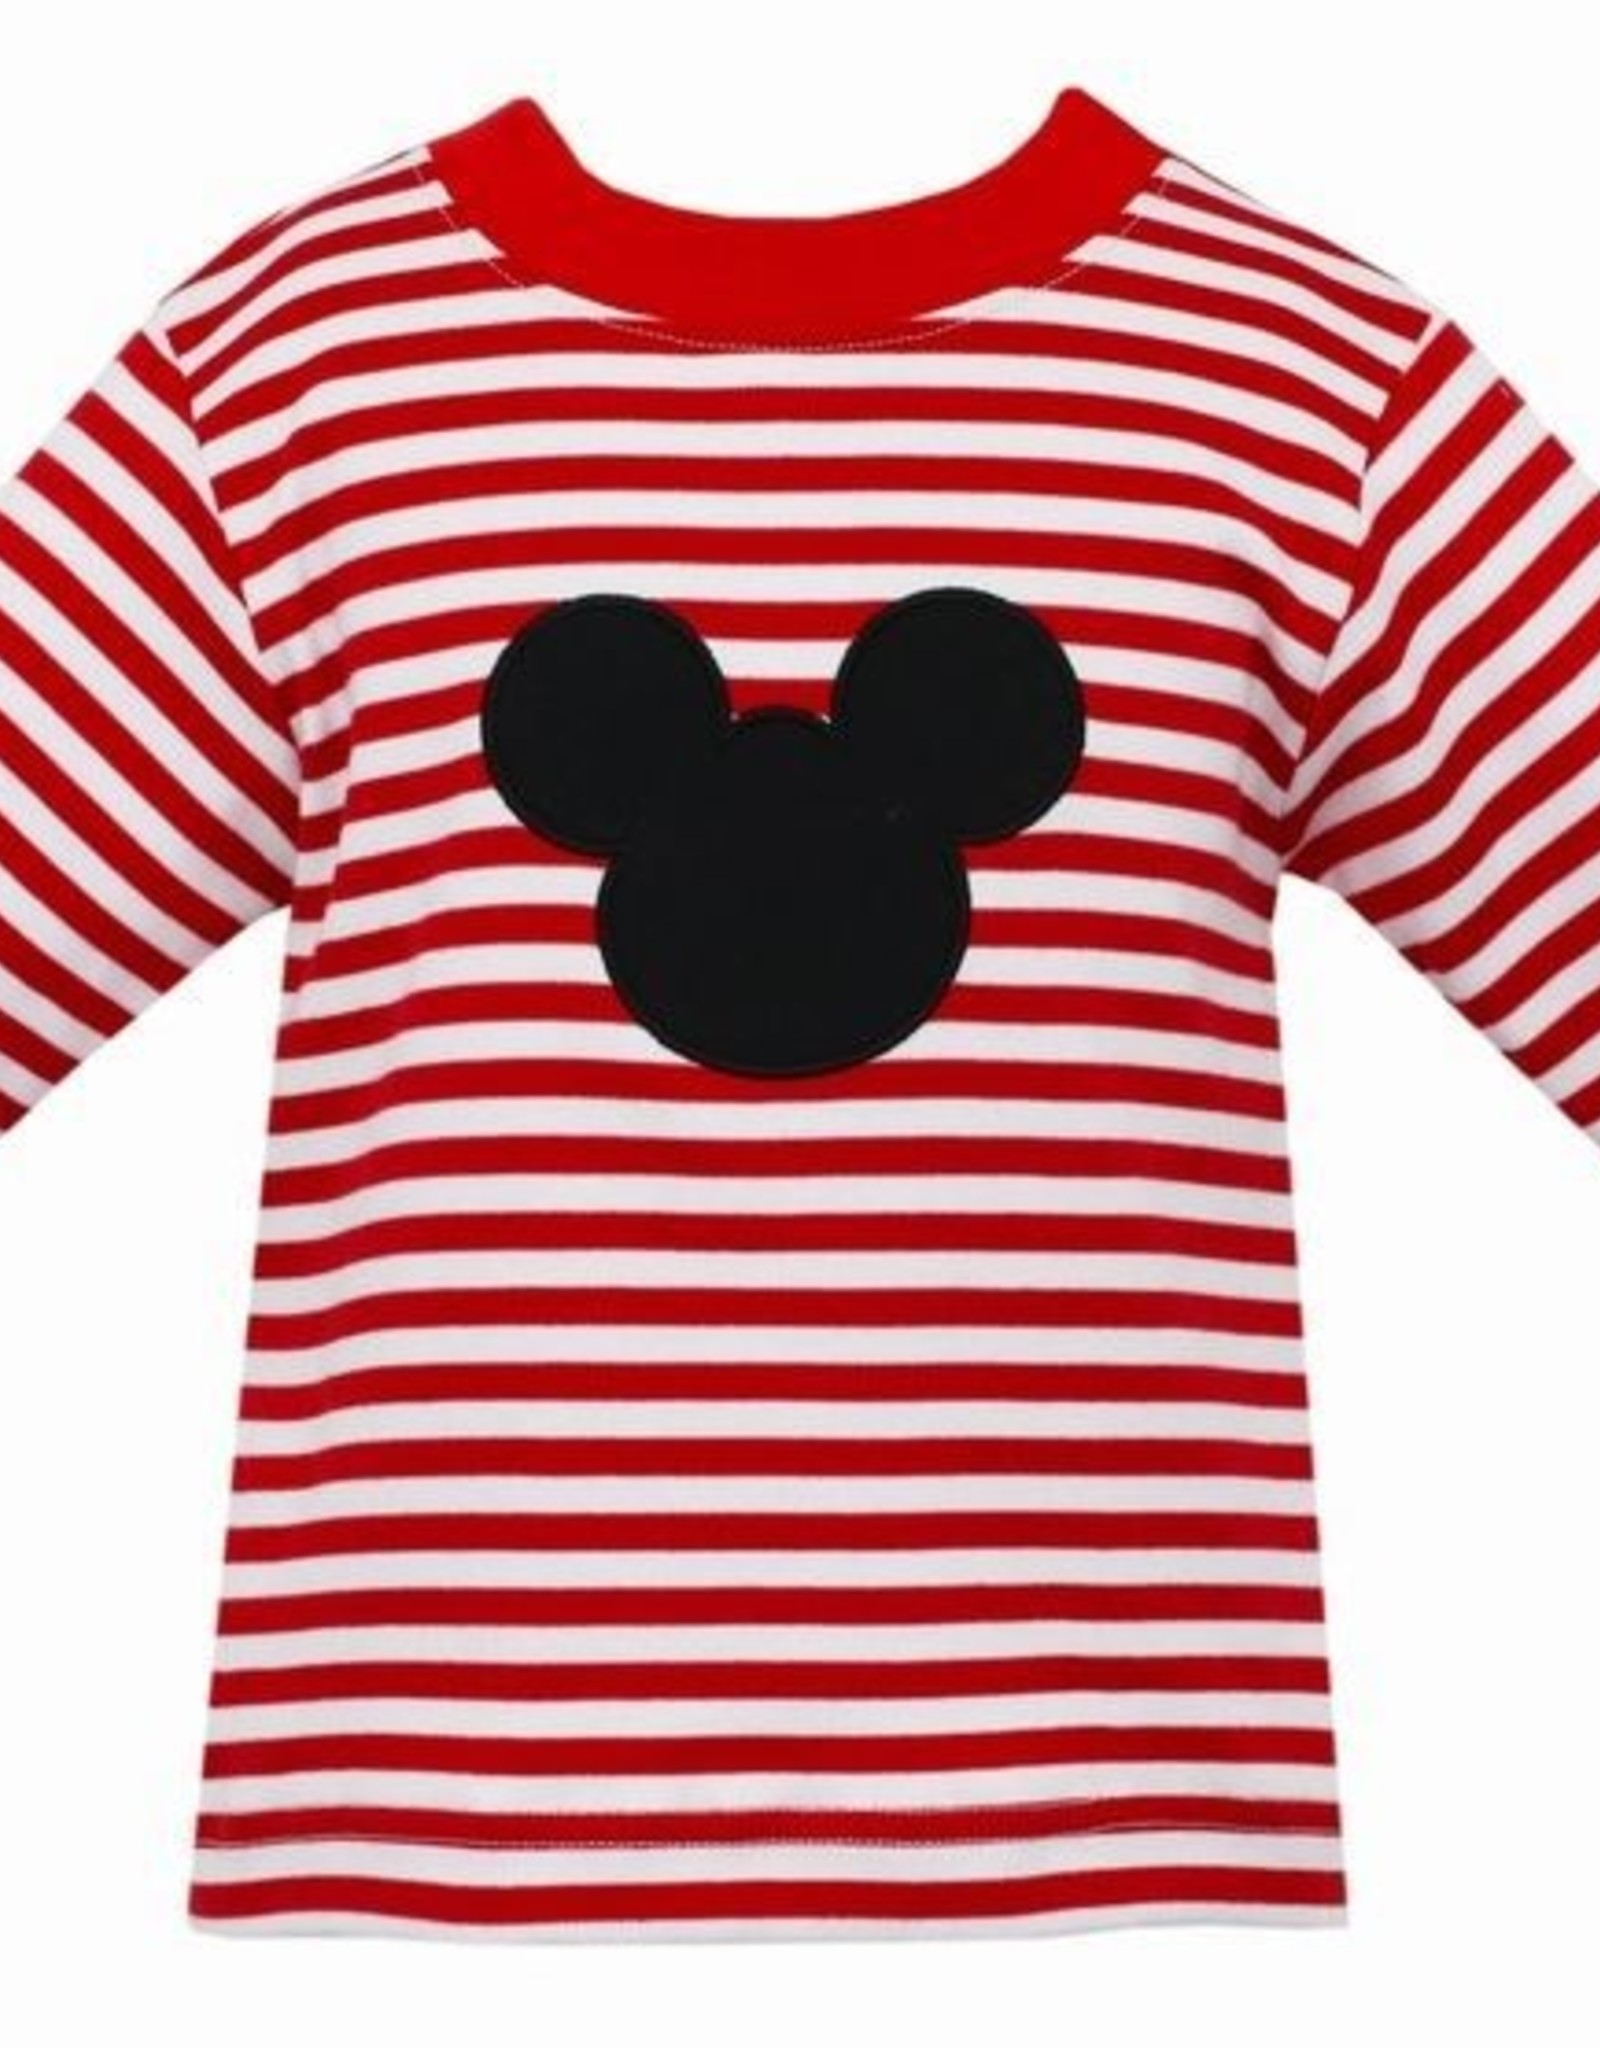 Claire and Charlie LS Red Stripe Mickey Shirt